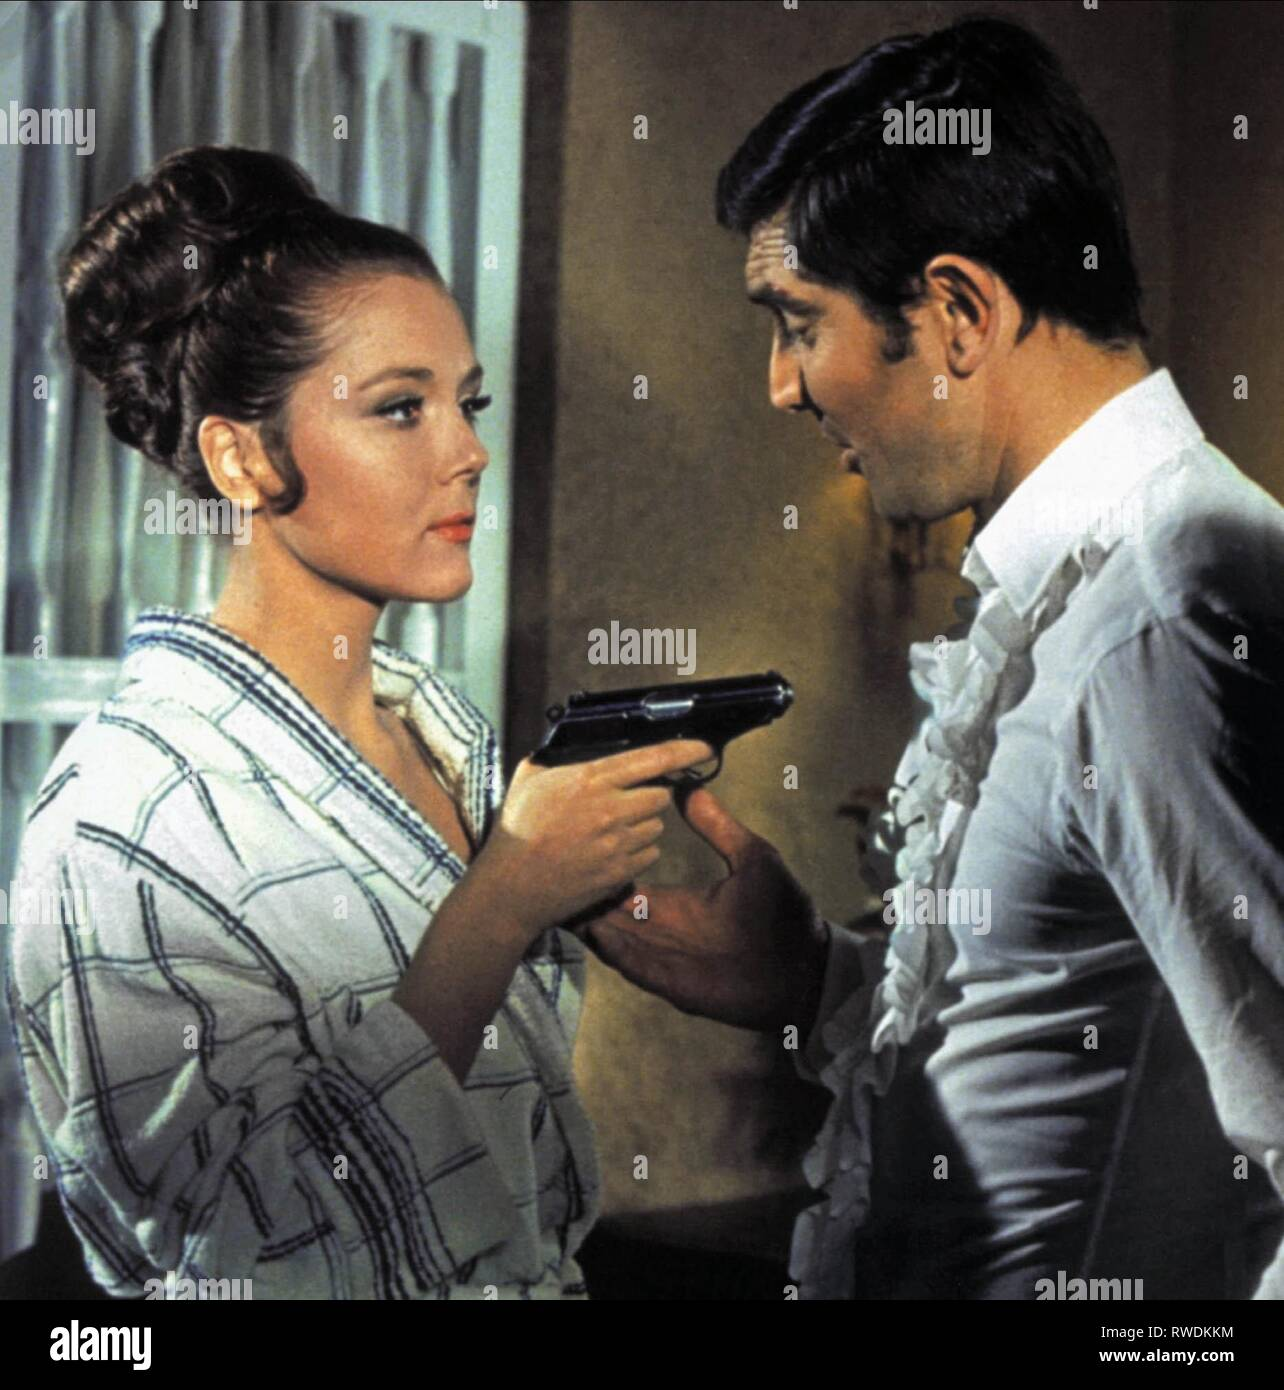 diana rigg george lazenby james bond on her majesty s secret service 1969 stock photo alamy https www alamy com diana rigggeorge lazenby james bond on her majestys secret service 1969 image239402008 html